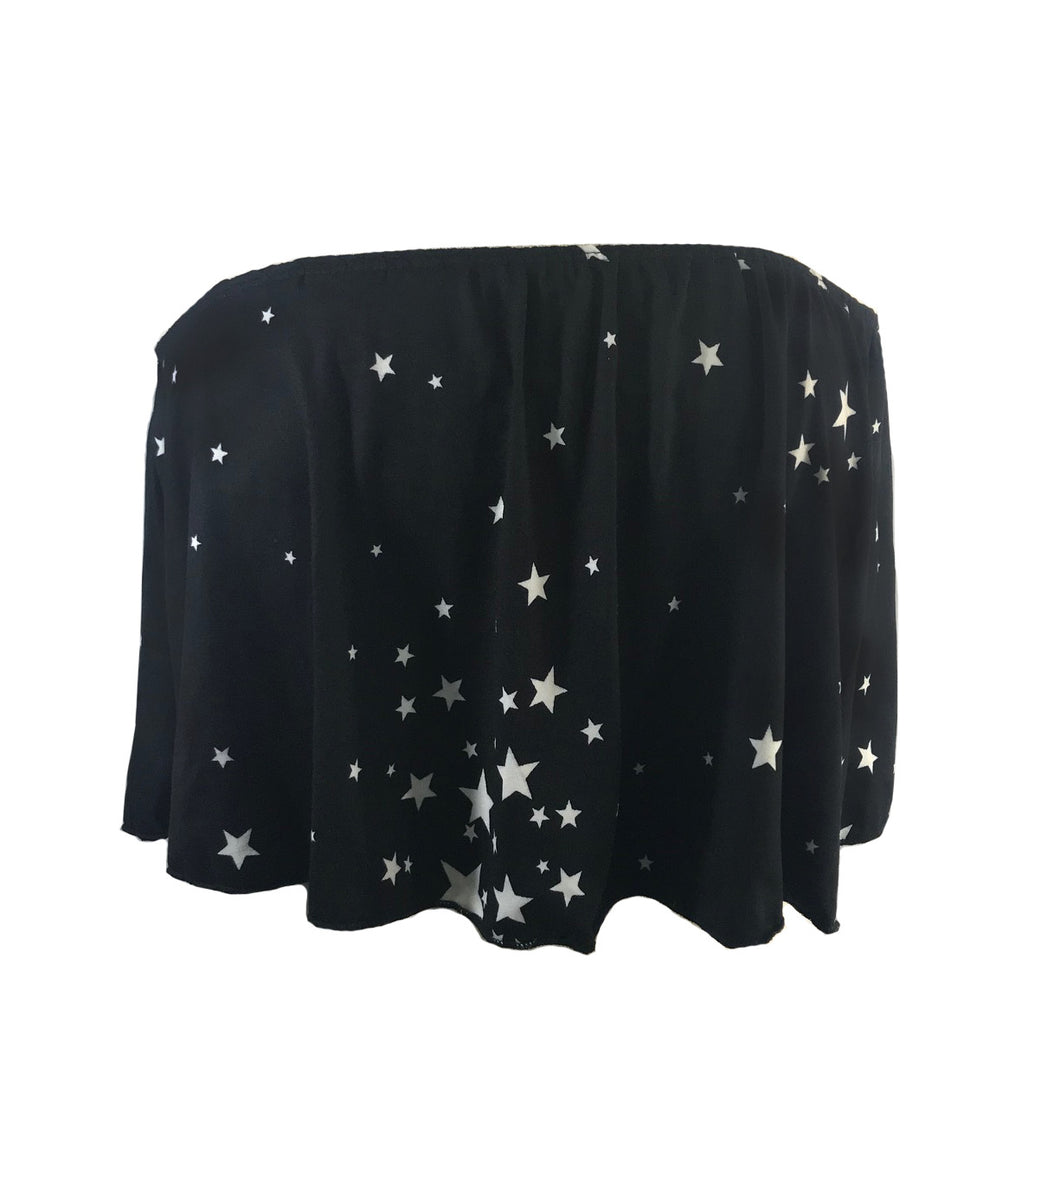 BLACK STARS BANDEAU TOP